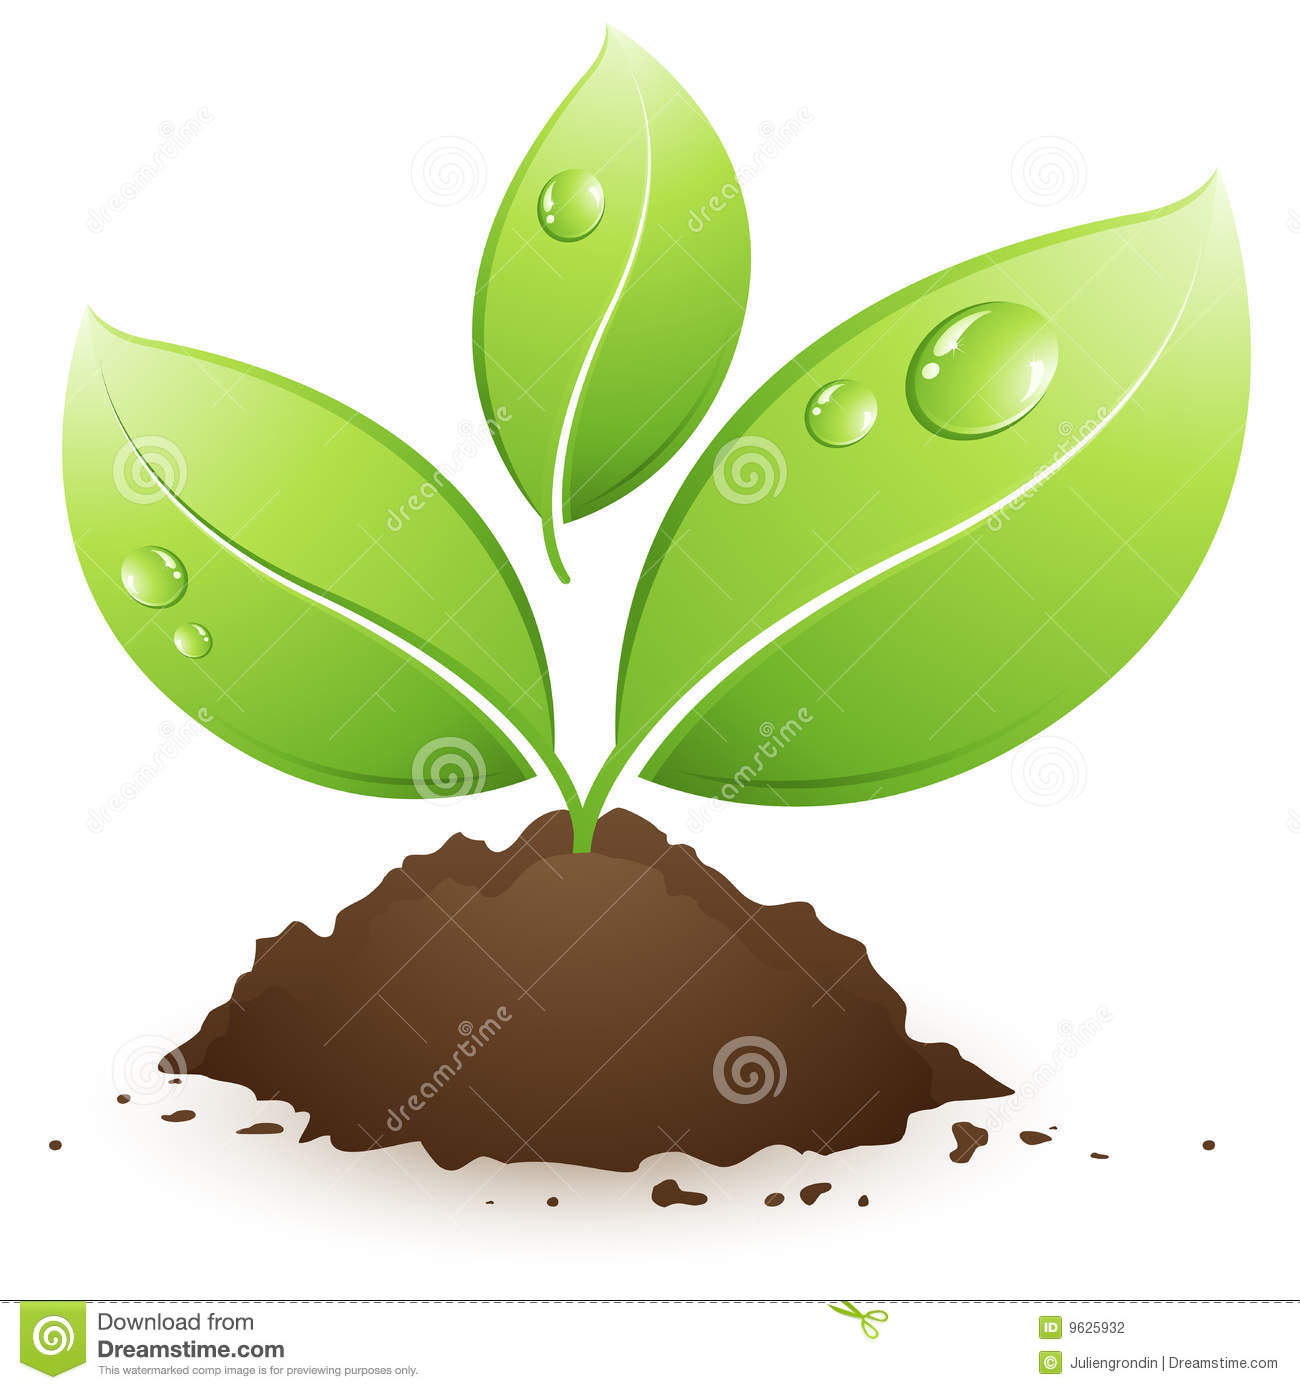 Plant clipart images jpg royalty free stock Plant Clip Art Images | Clipart Panda - Free Clipart Images jpg royalty free stock